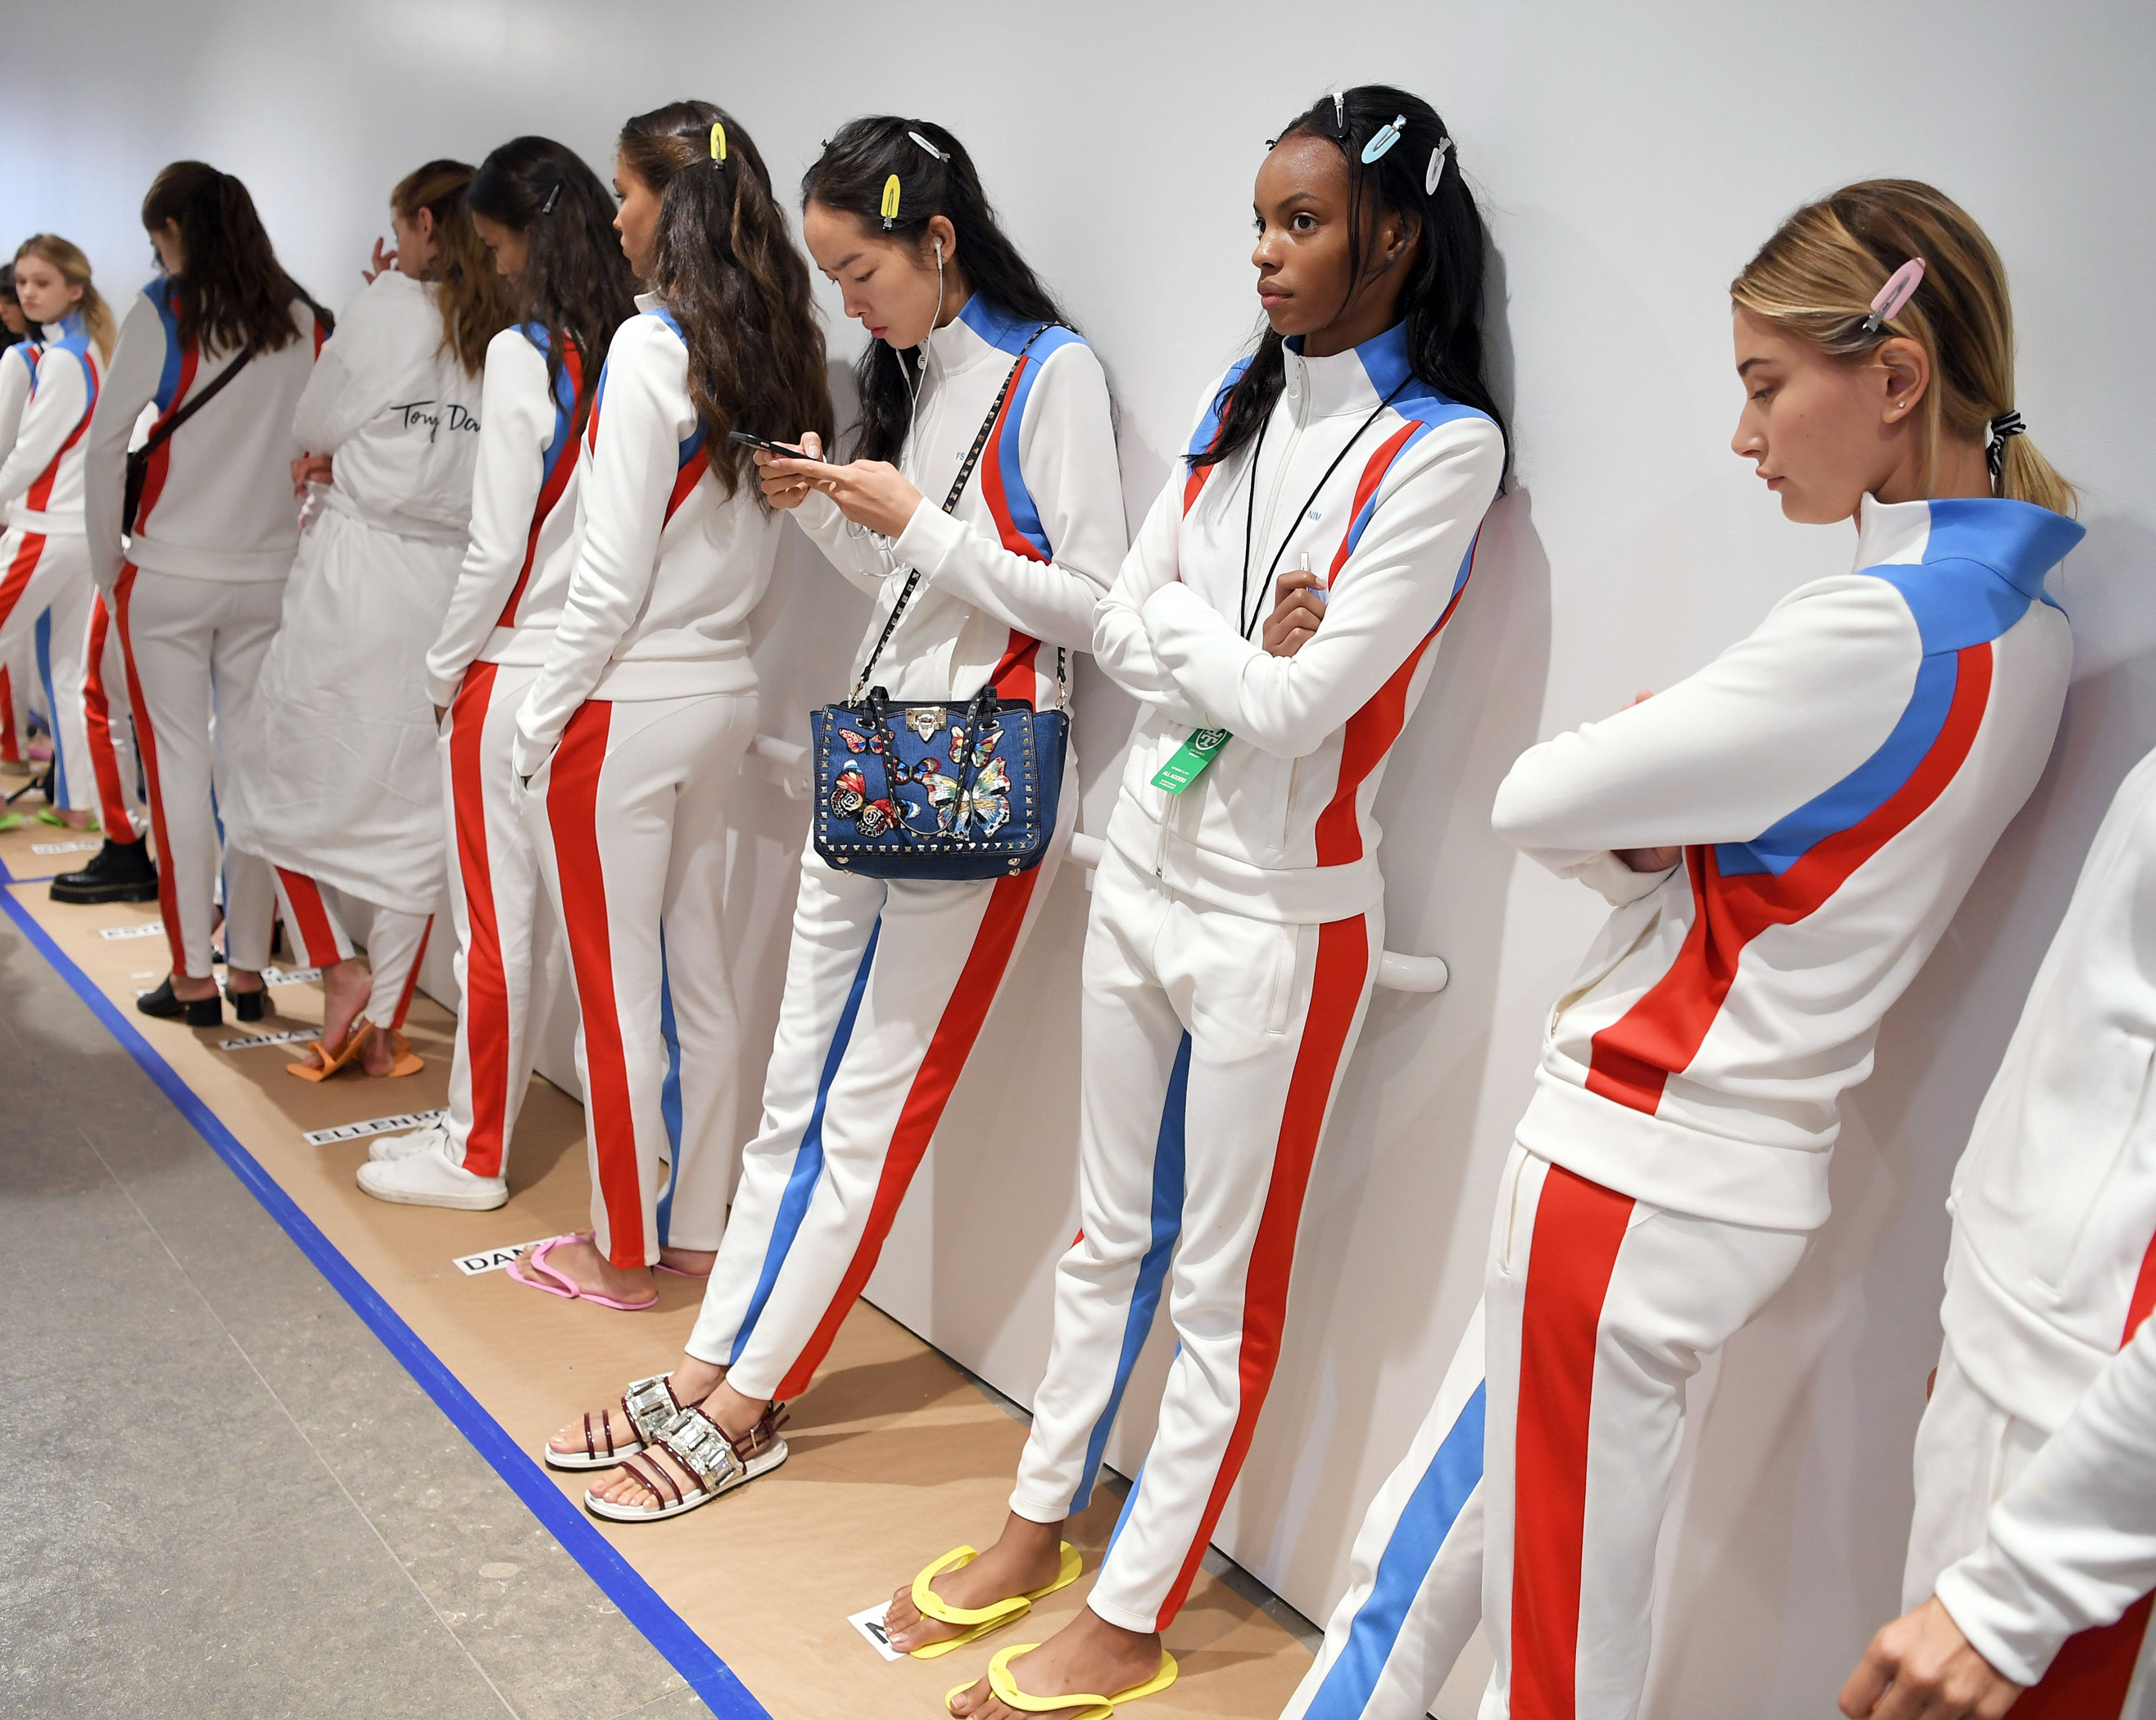 Models wait for rehearsals - Tory Burch Spring Summer 2017 - September 13, 2016